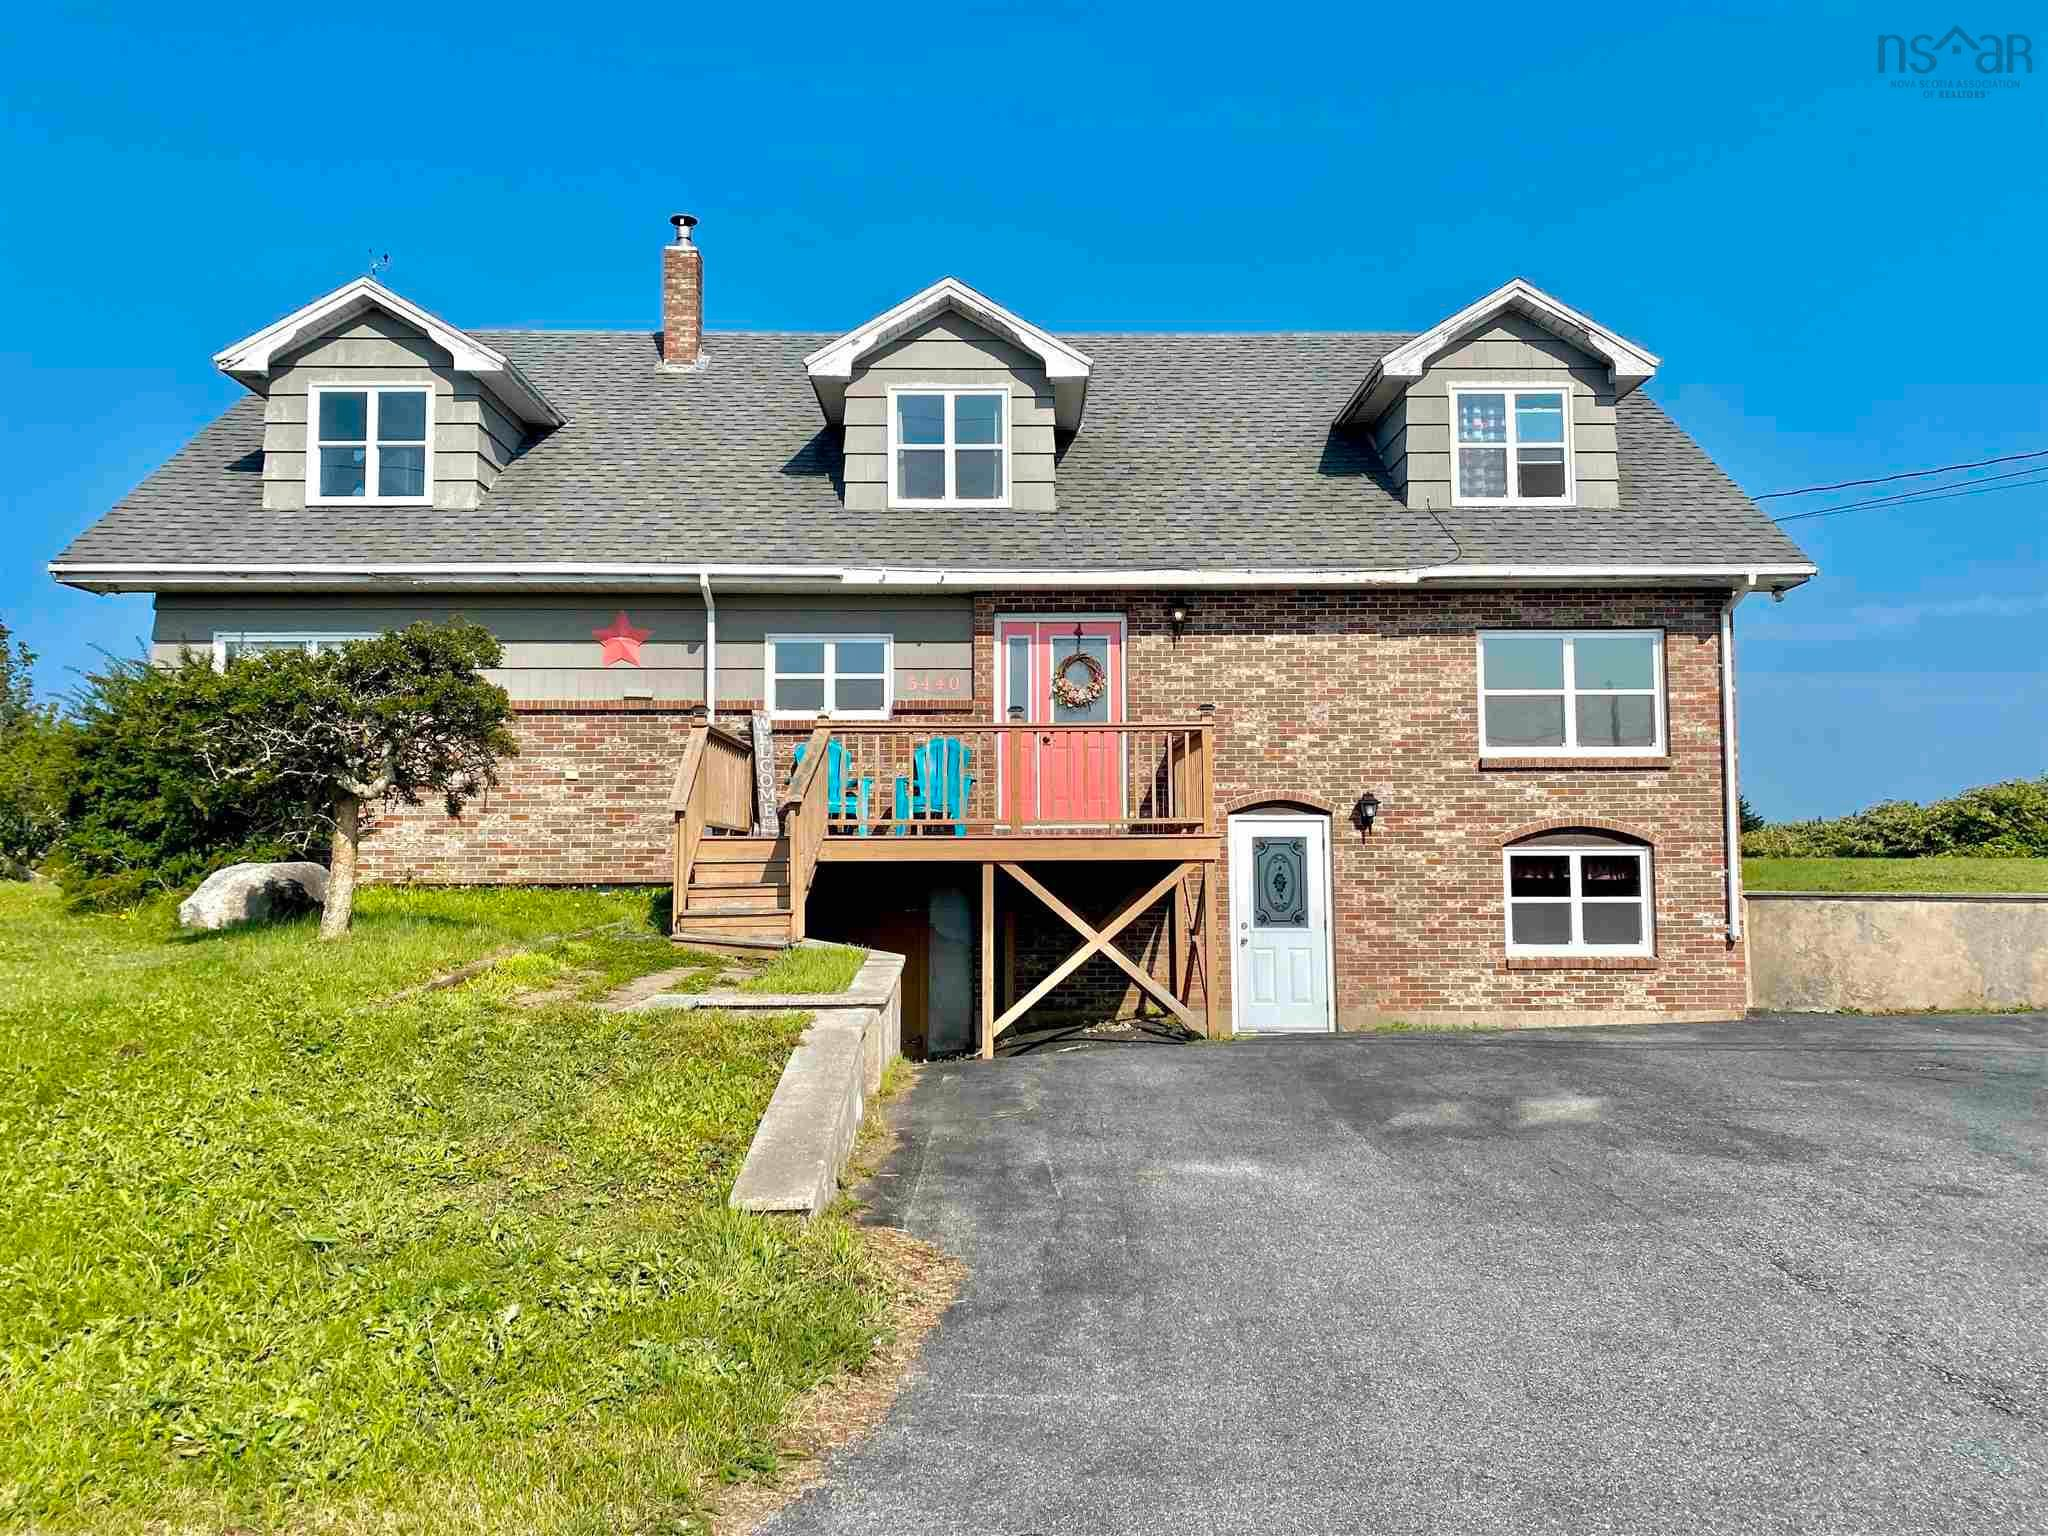 Main Photo: 5440 Highway 3 in Shag Harbour: 407-Shelburne County Residential for sale (South Shore)  : MLS®# 202122324